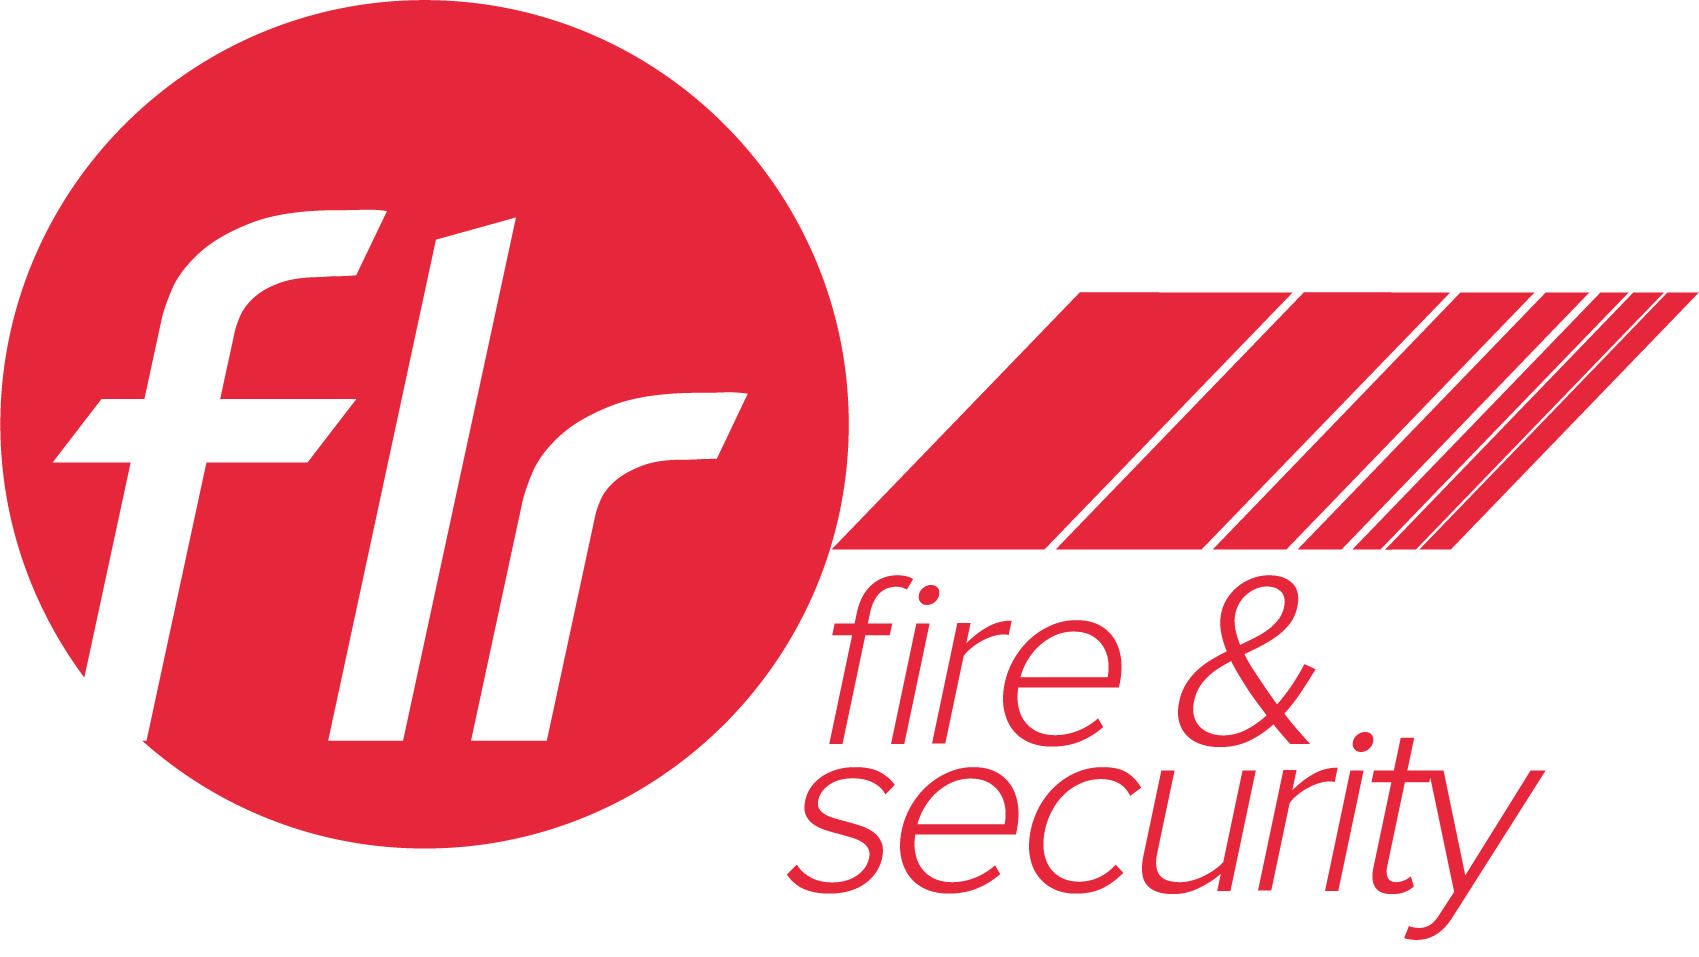 FLR fire and Security red